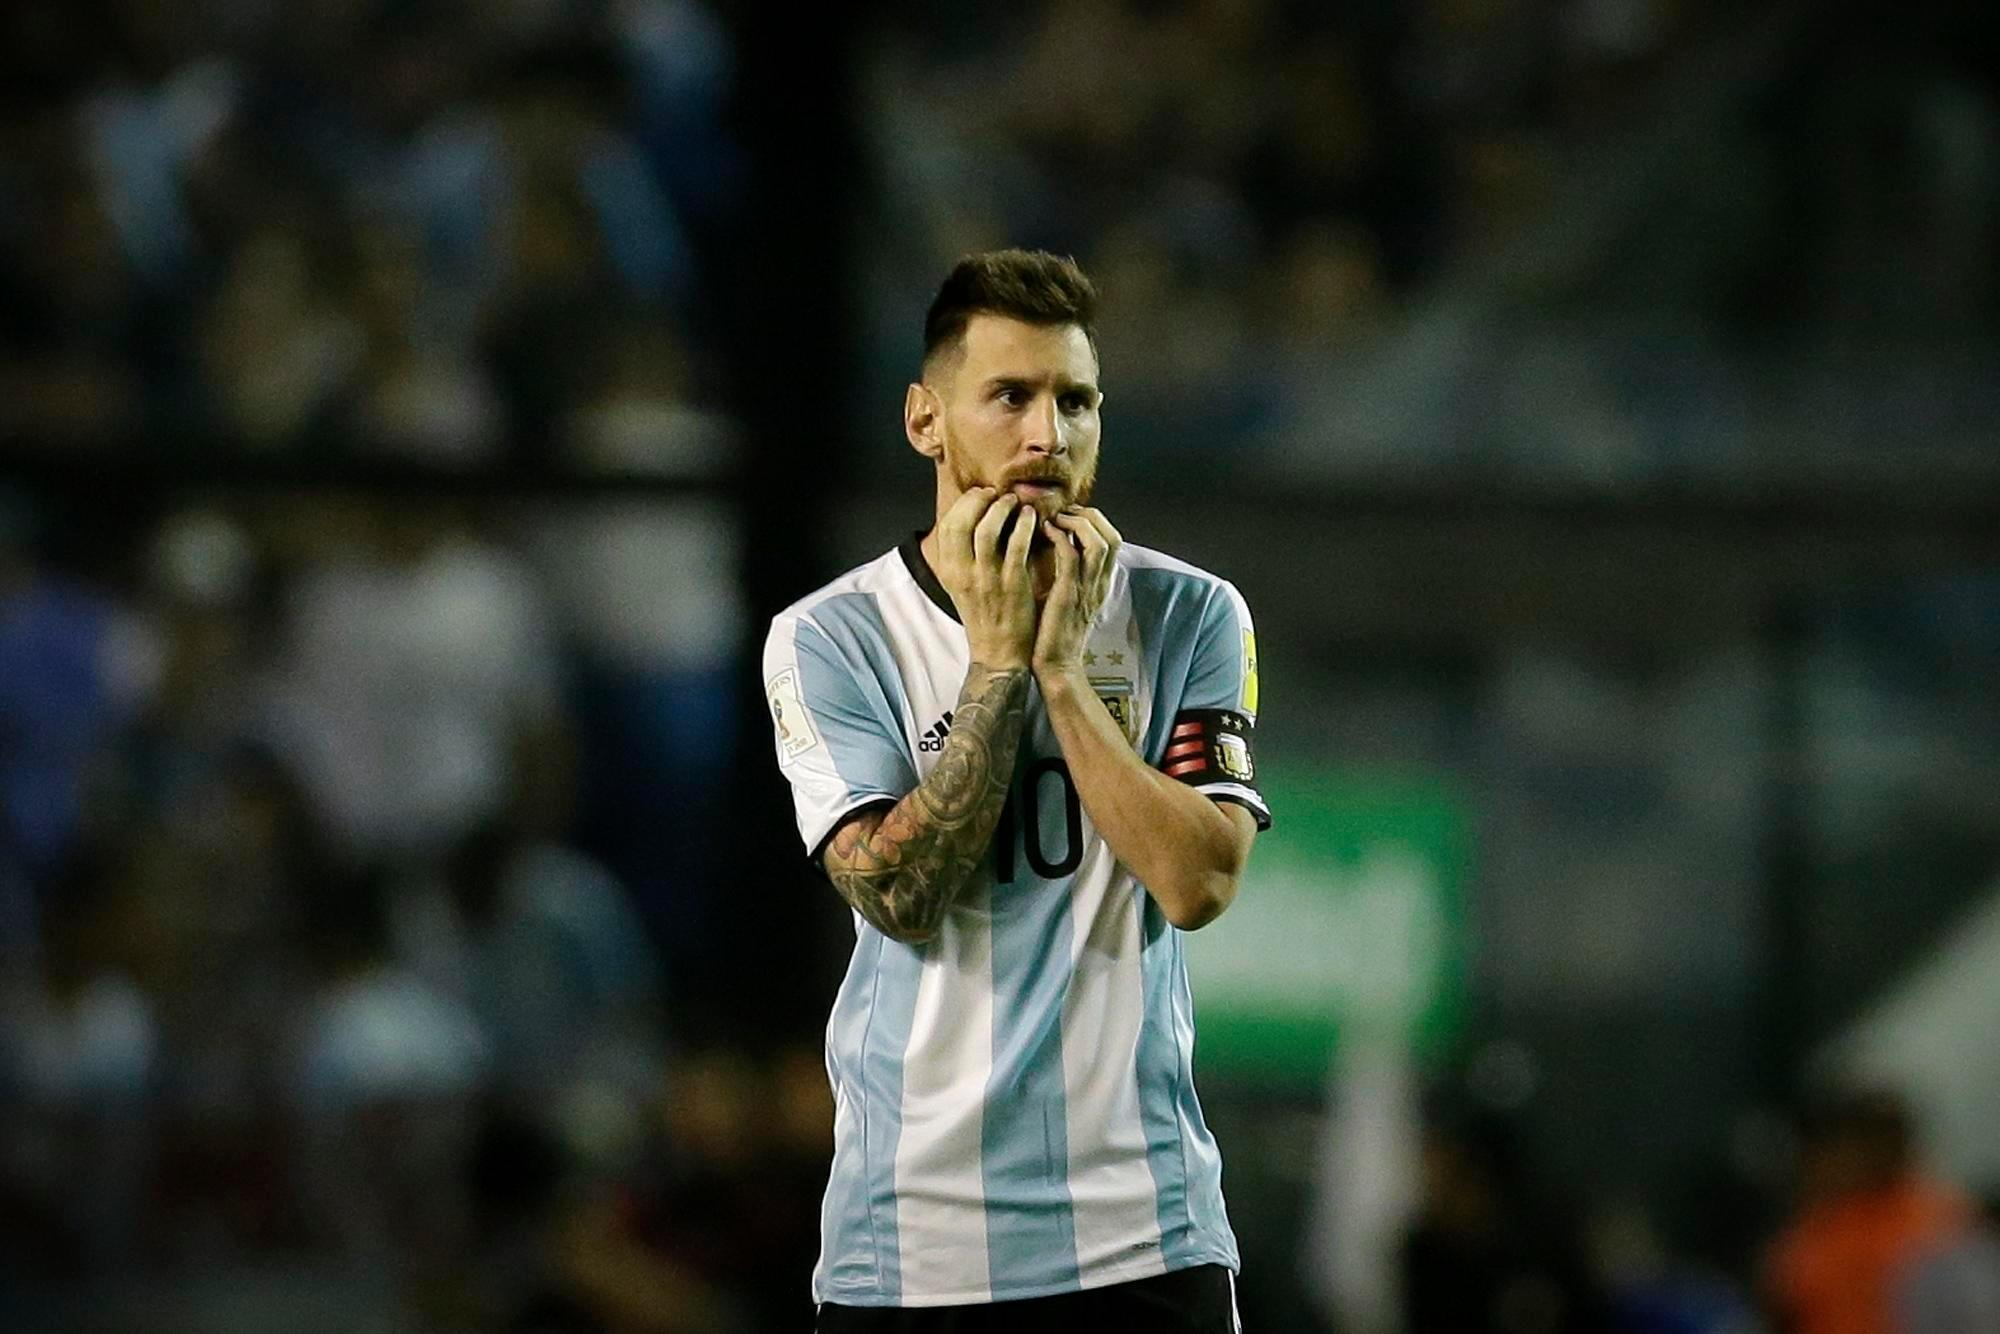 Argentina have one more game to stay in with a chance of making it to Russia